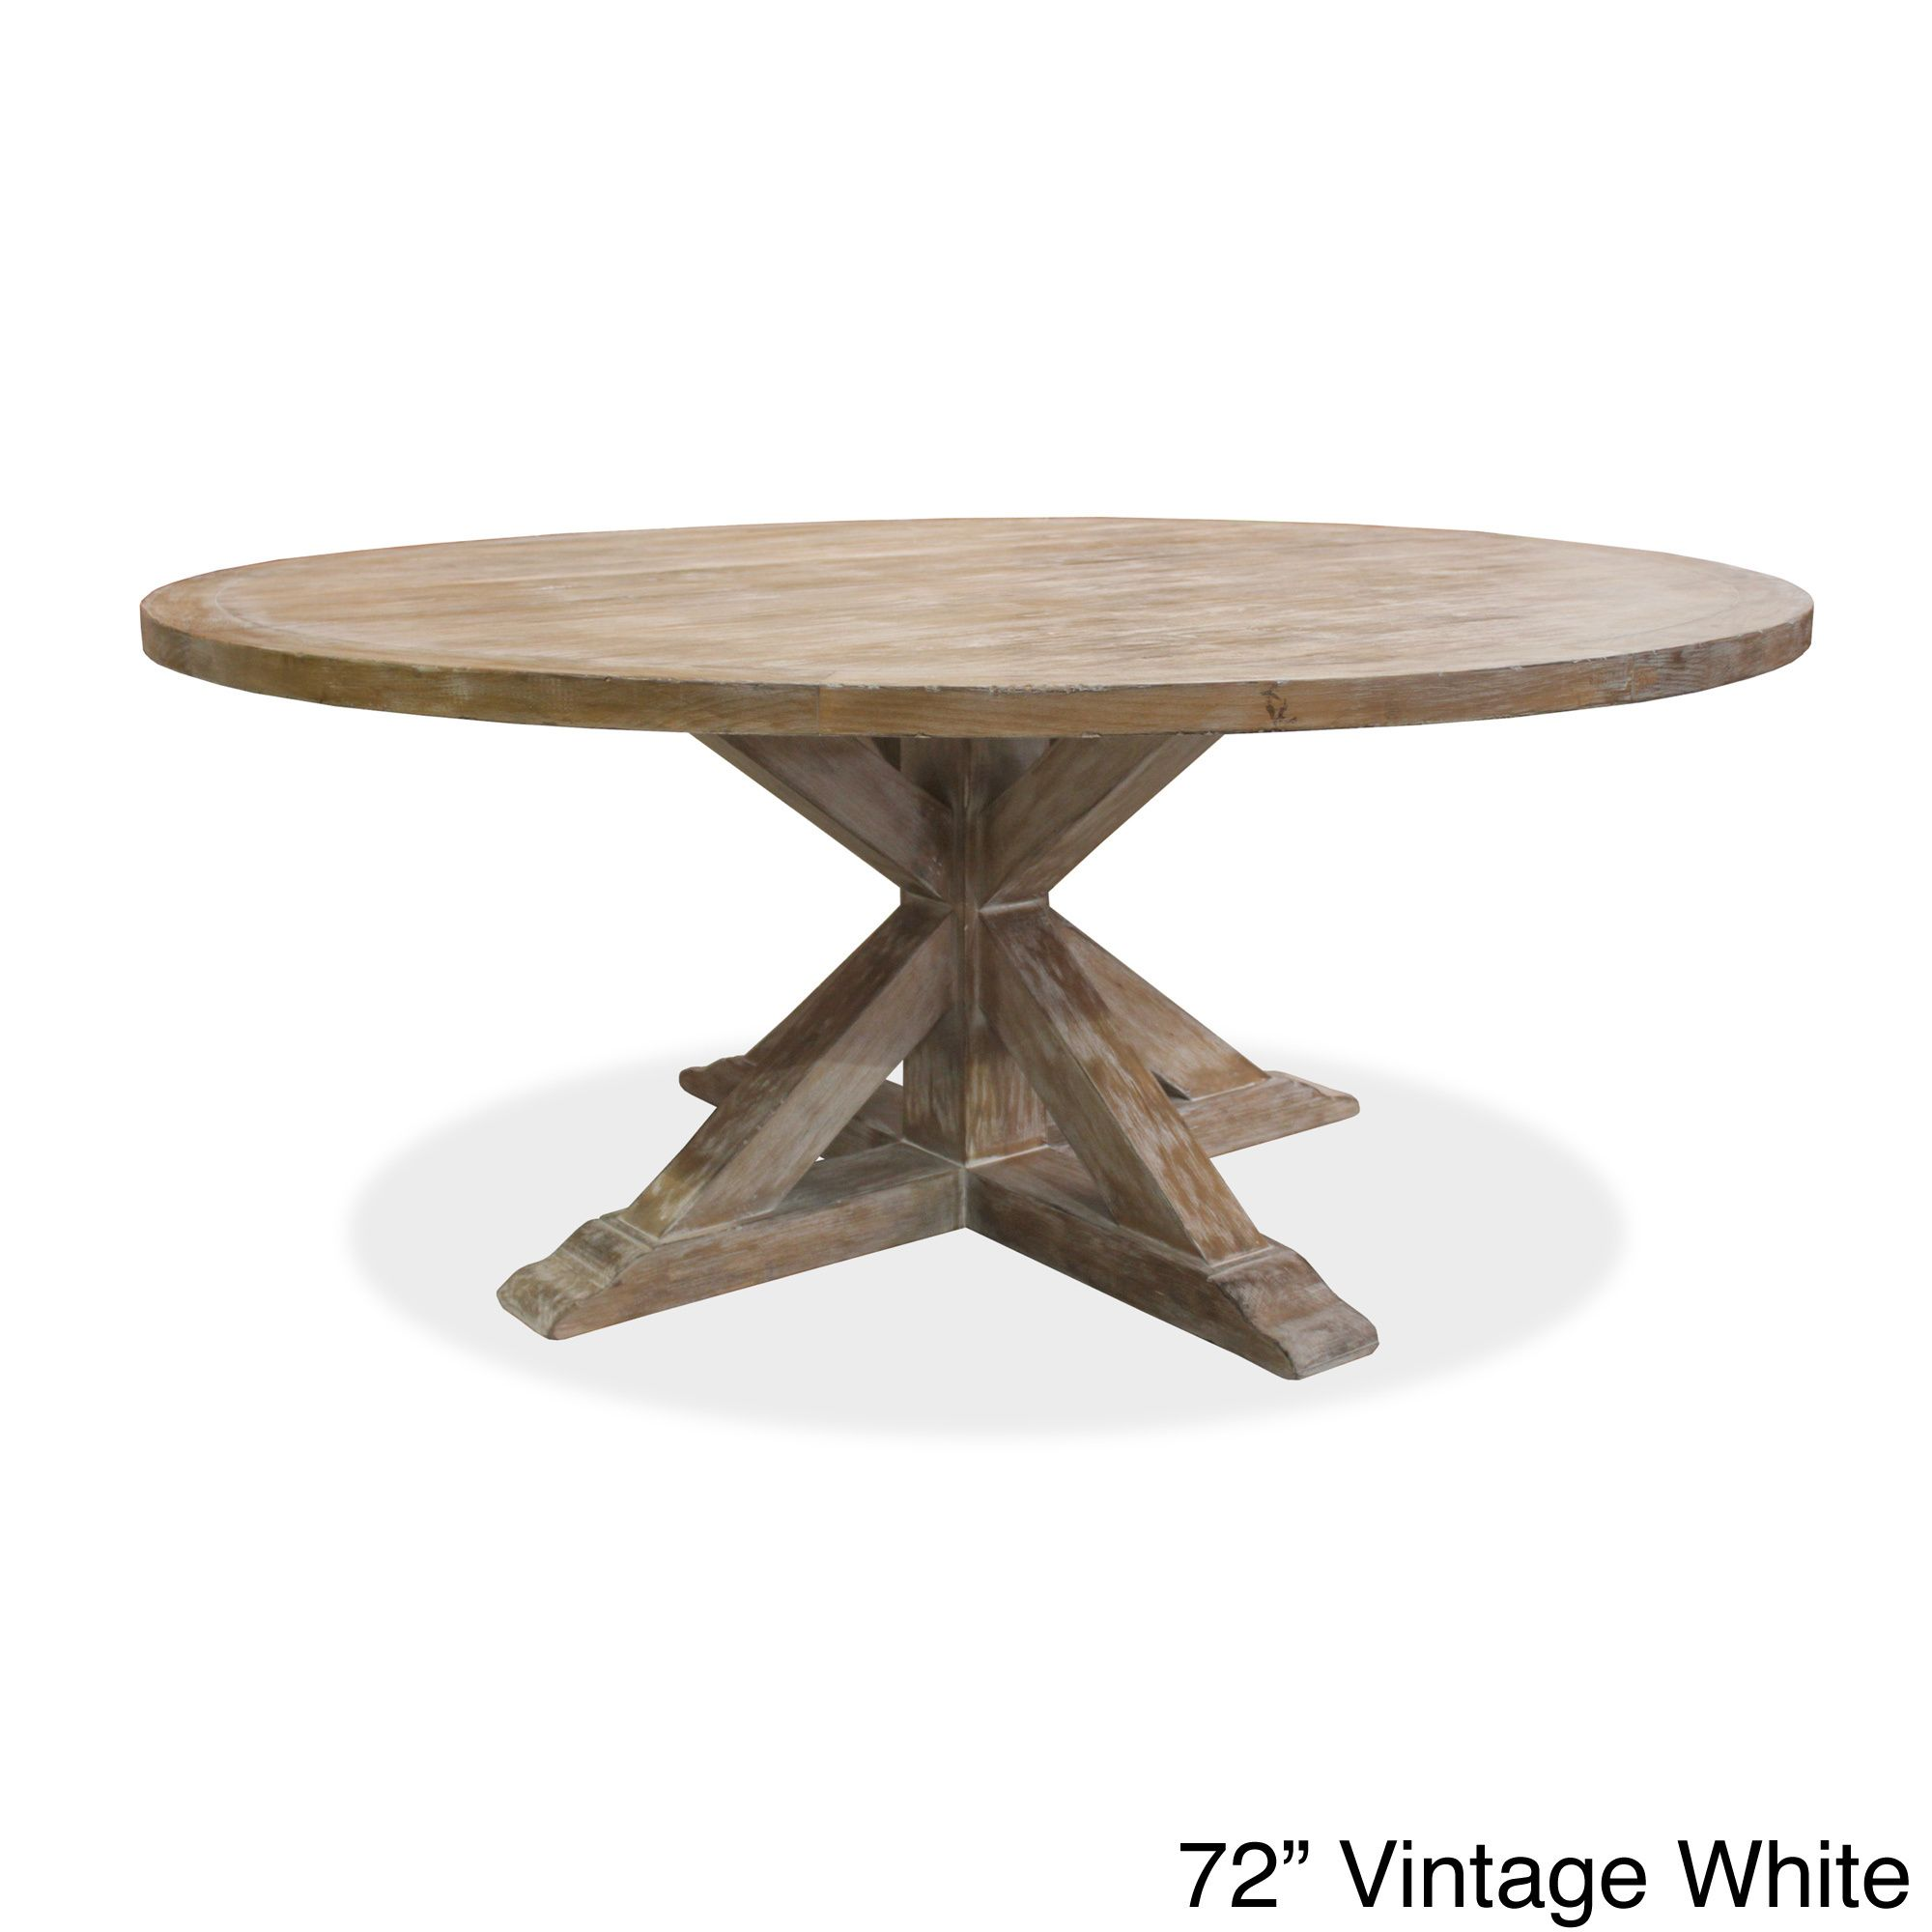 the la phillippe dining table is made with 80 year old recycled